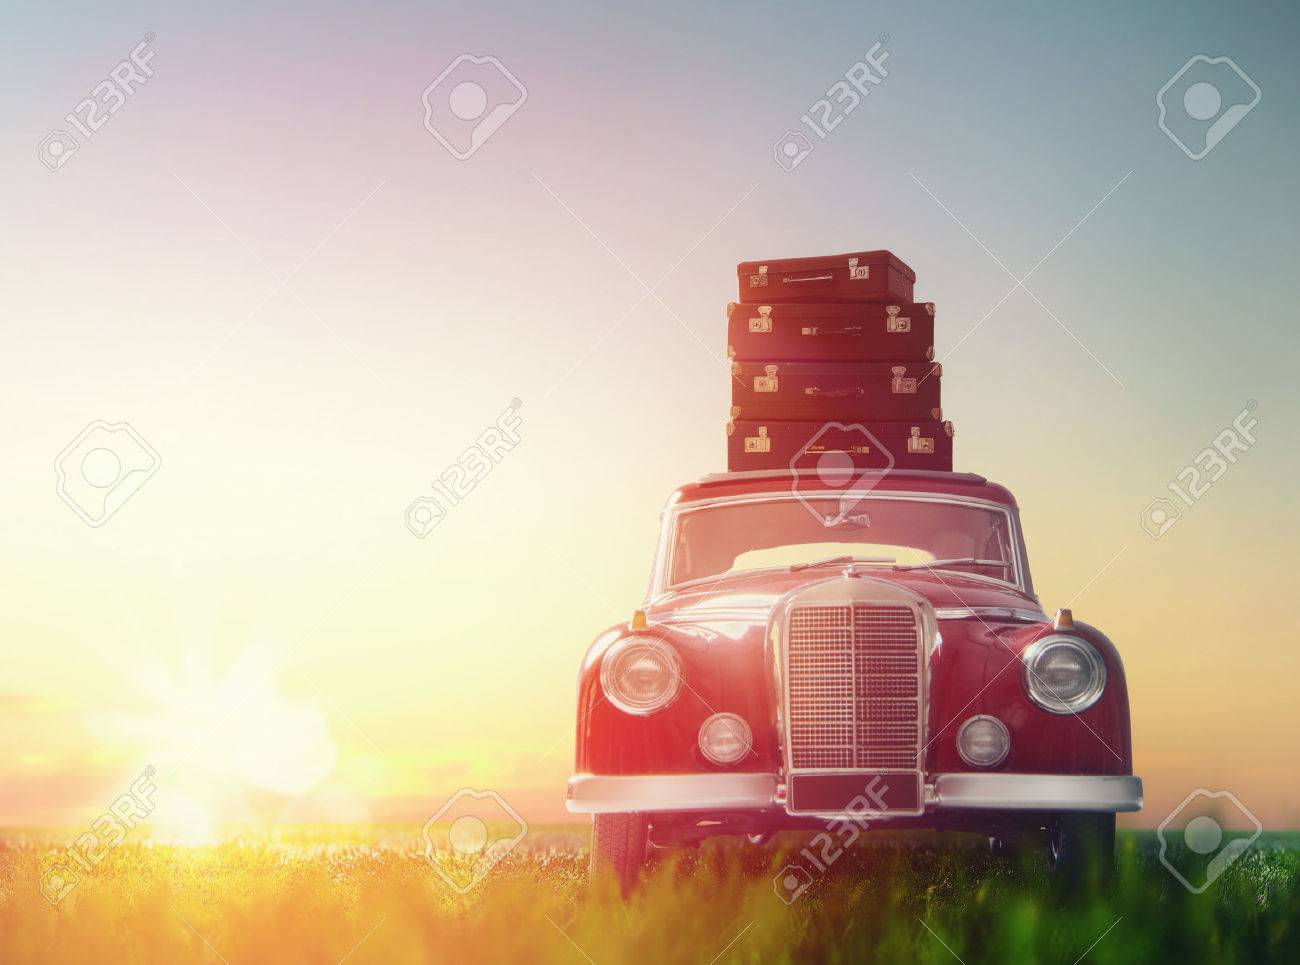 Toward adventure! The suitcases are on the roof of a vintage car. - 55145531